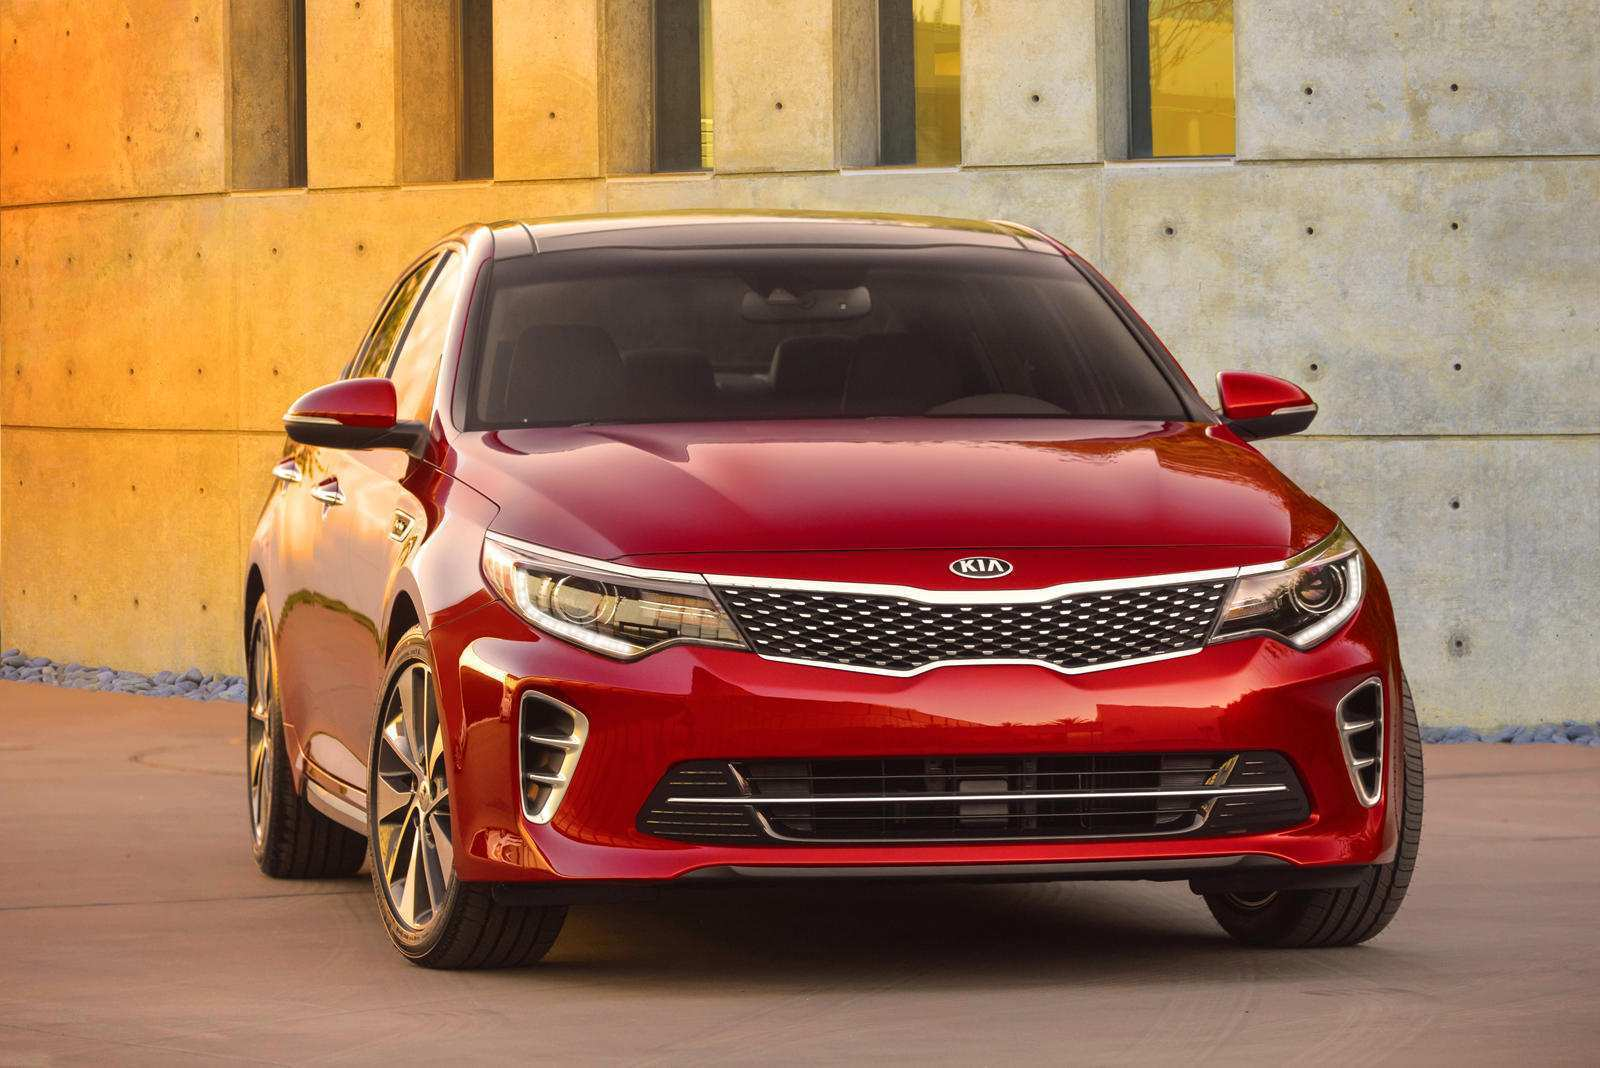 64 All New 2020 Kia Optima Research New